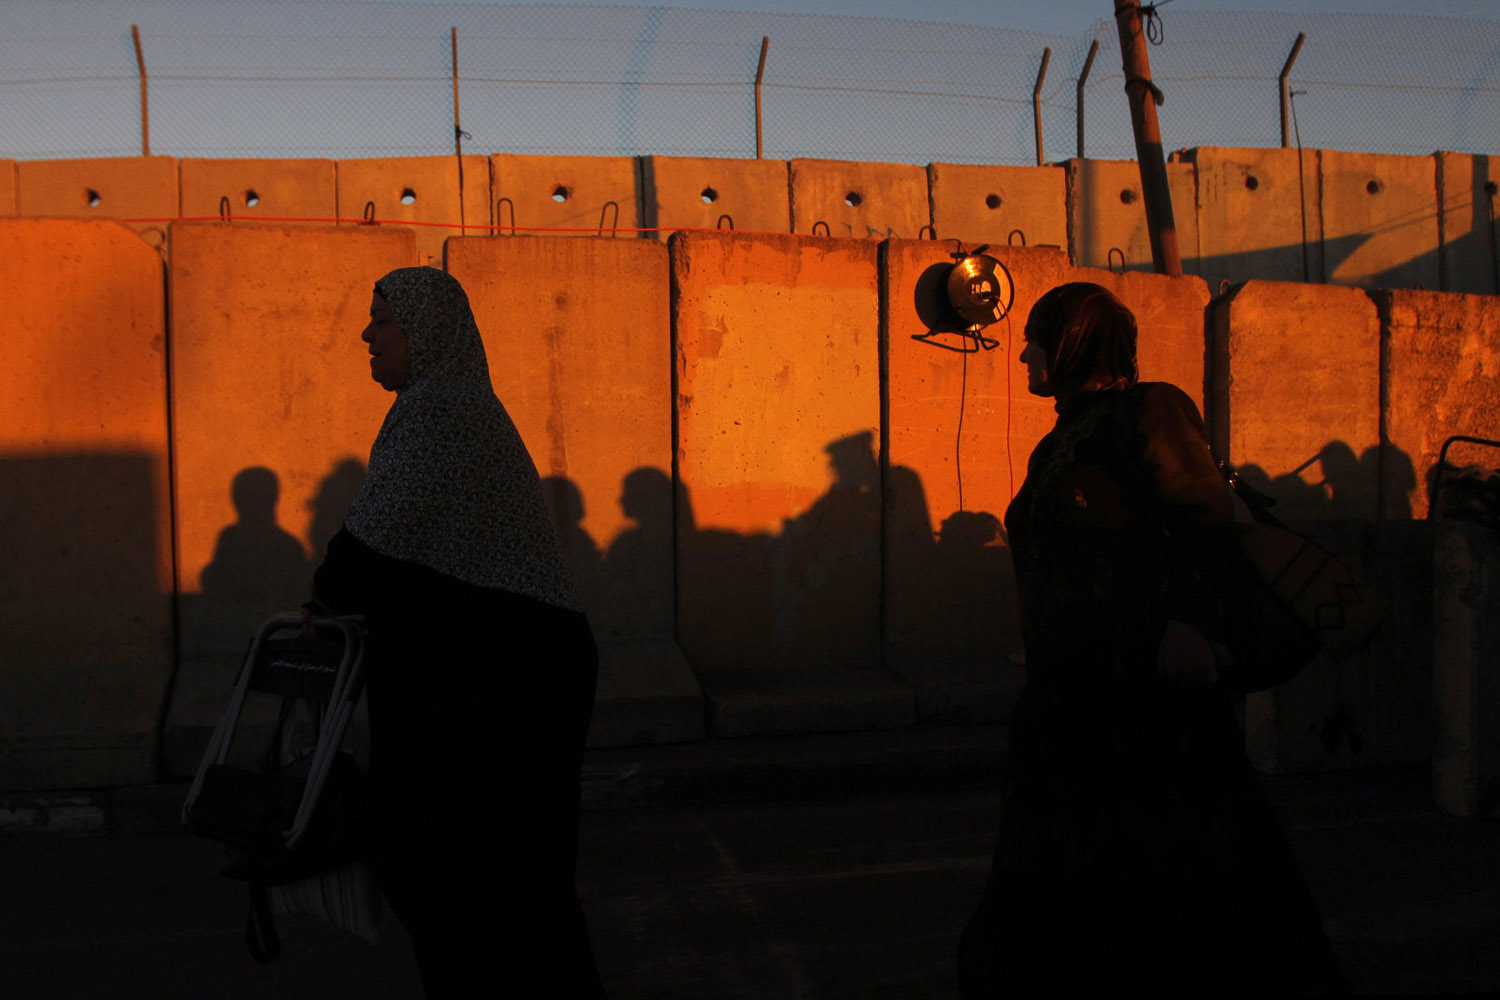 Aug. 10, 2012. Palestinian women walk past a section of Israel's controversial barrier at Qalandiya checkpoint outside the West Bank city of Ramallah.